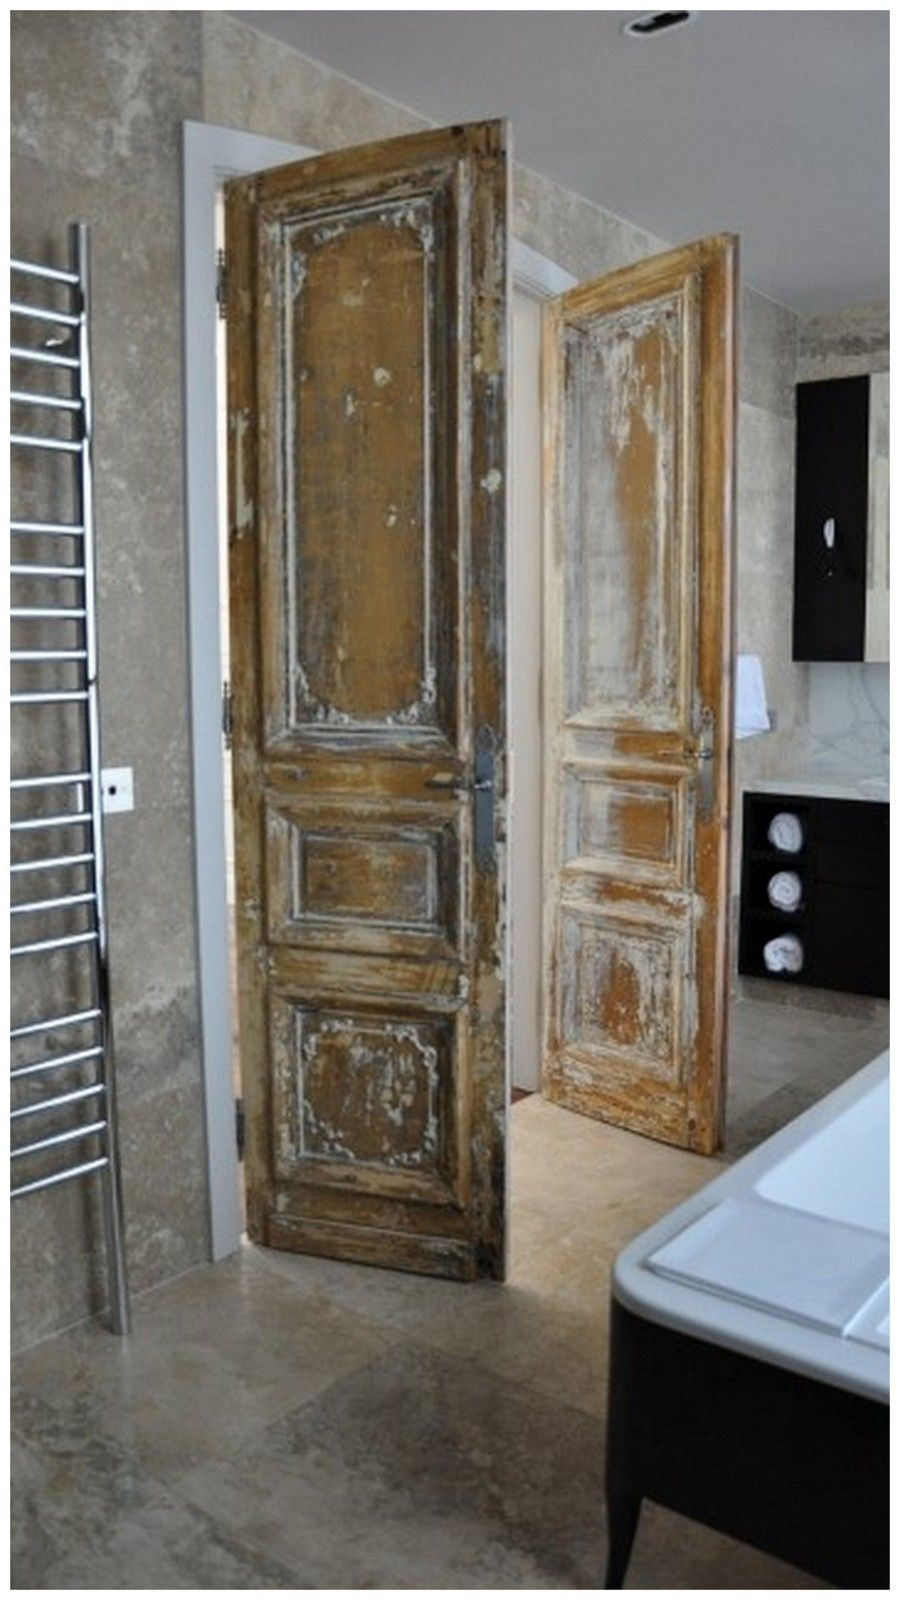 salvaged doors ideas on using salvaged doors in home decor pantry pinterest t ren deko. Black Bedroom Furniture Sets. Home Design Ideas